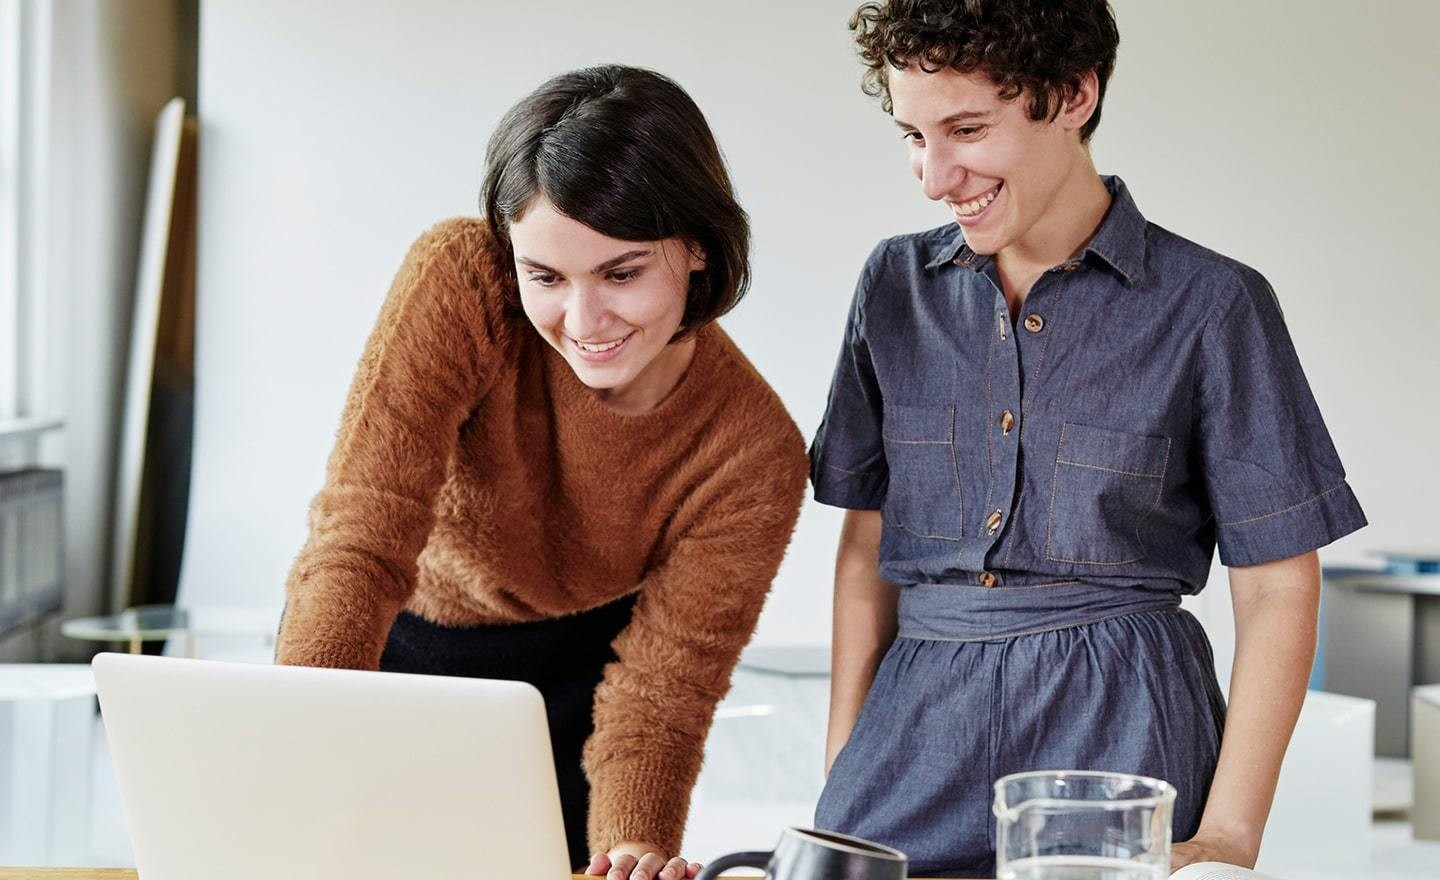 Two women standing over laptop